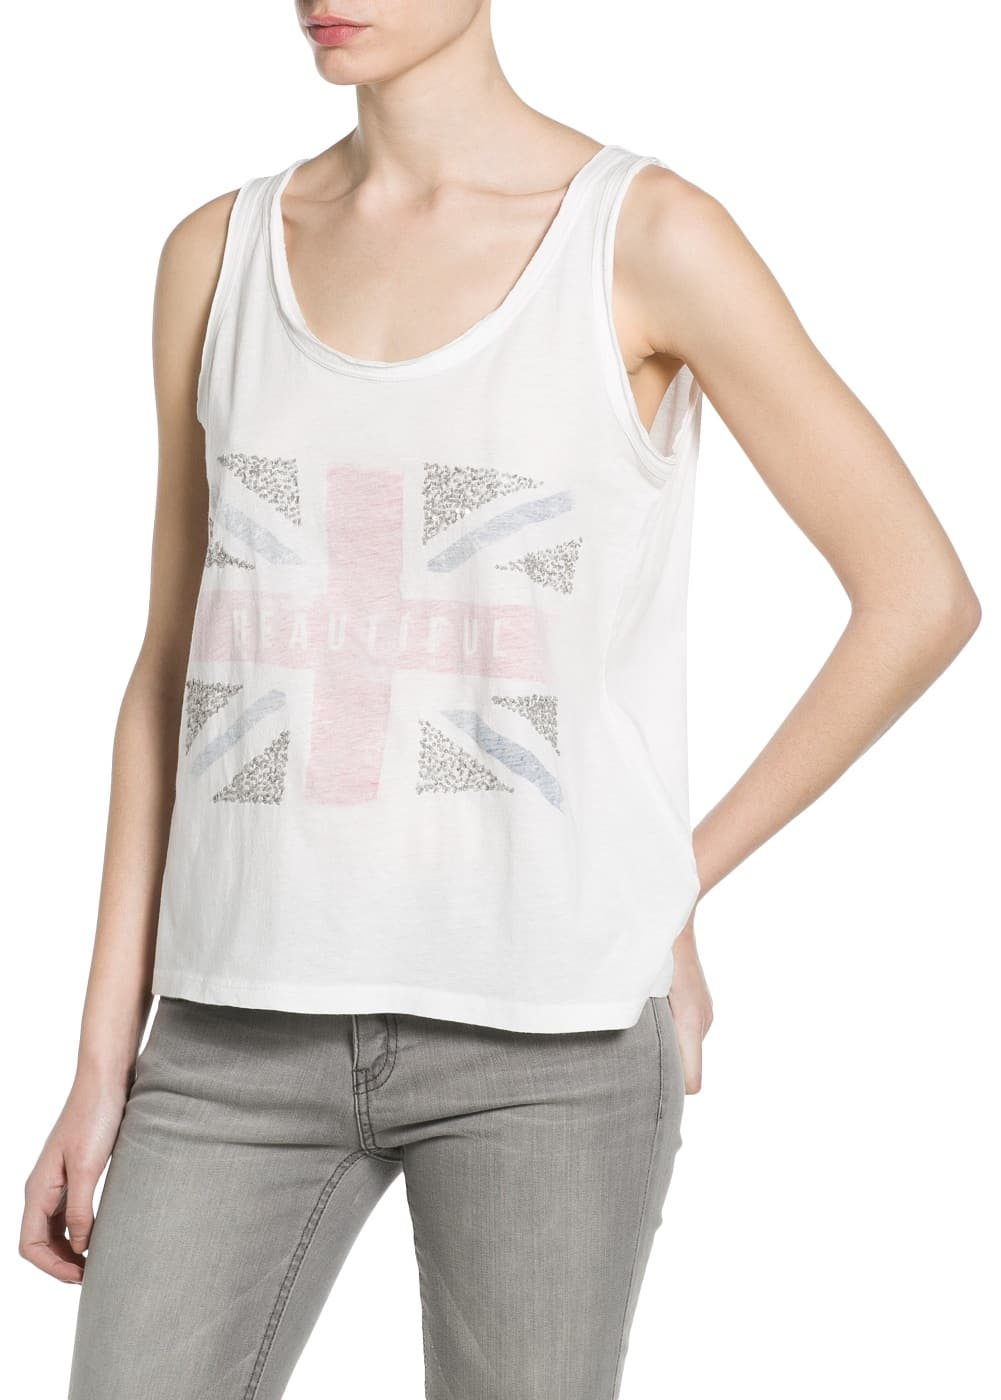 Sequin flag t-shirt